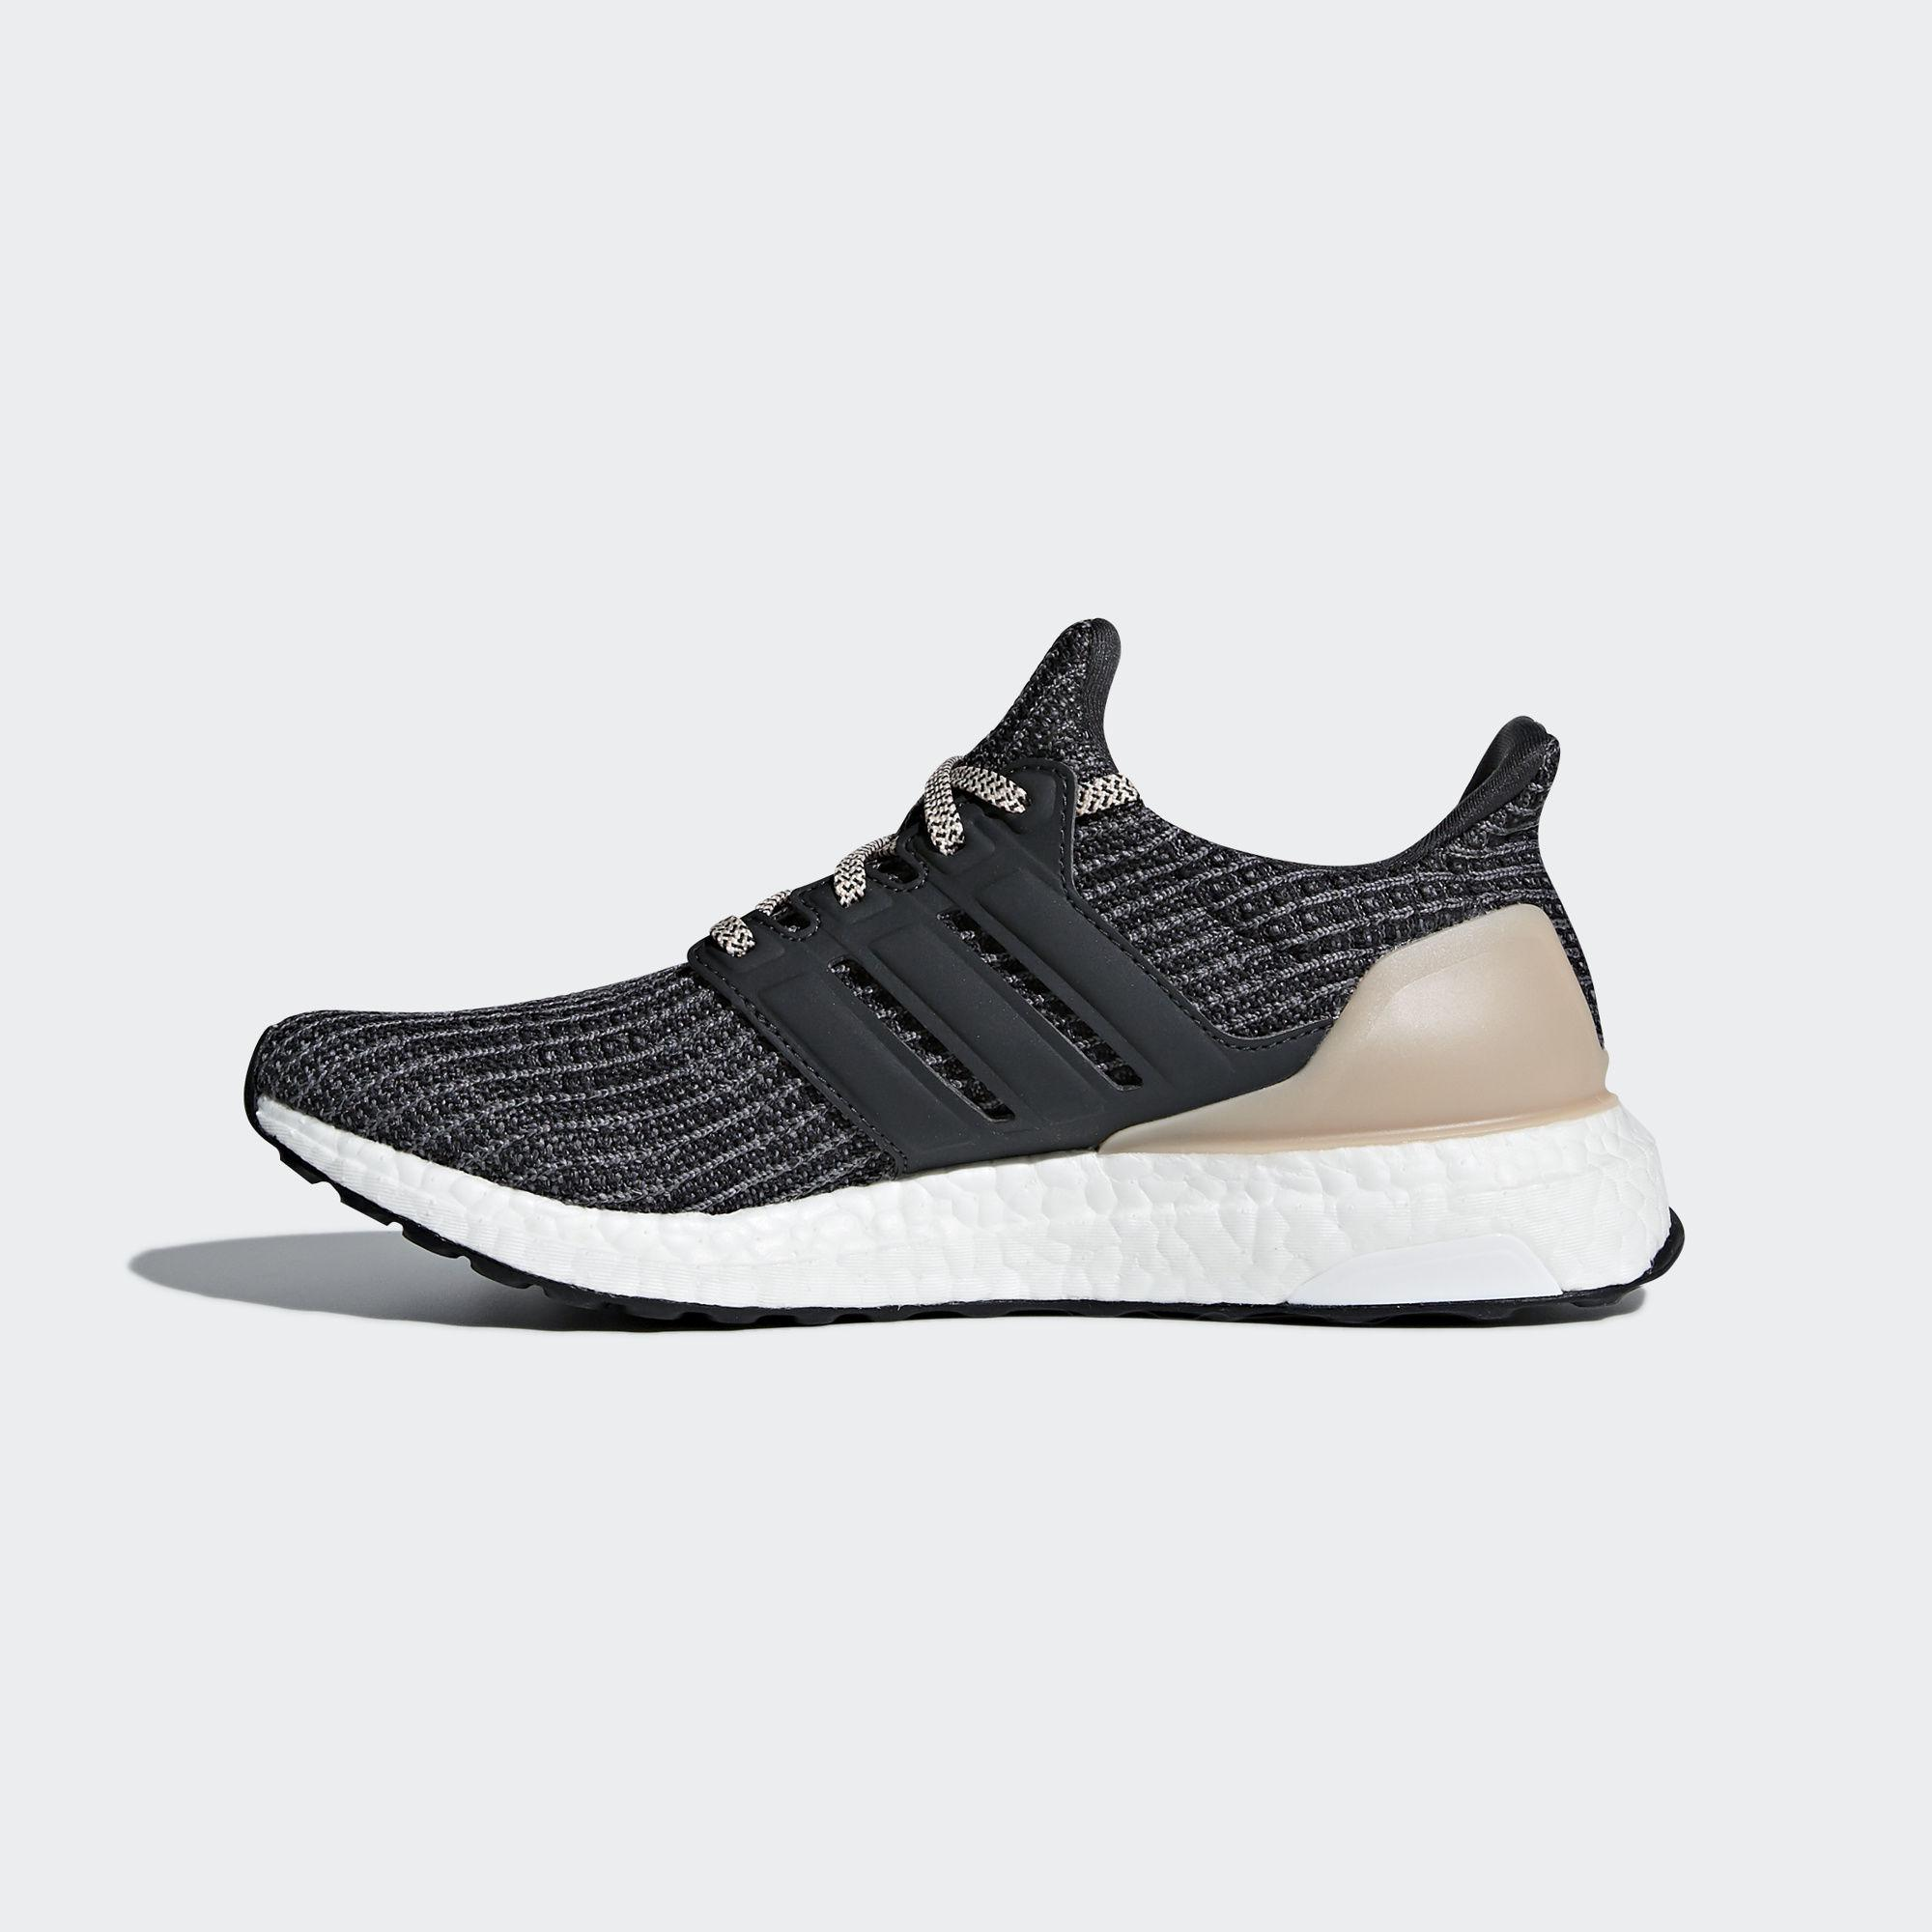 e7e2e754d ... uk adidas womens ultra boost running shoes grey five carbon ash pearl  72380 bf5dc